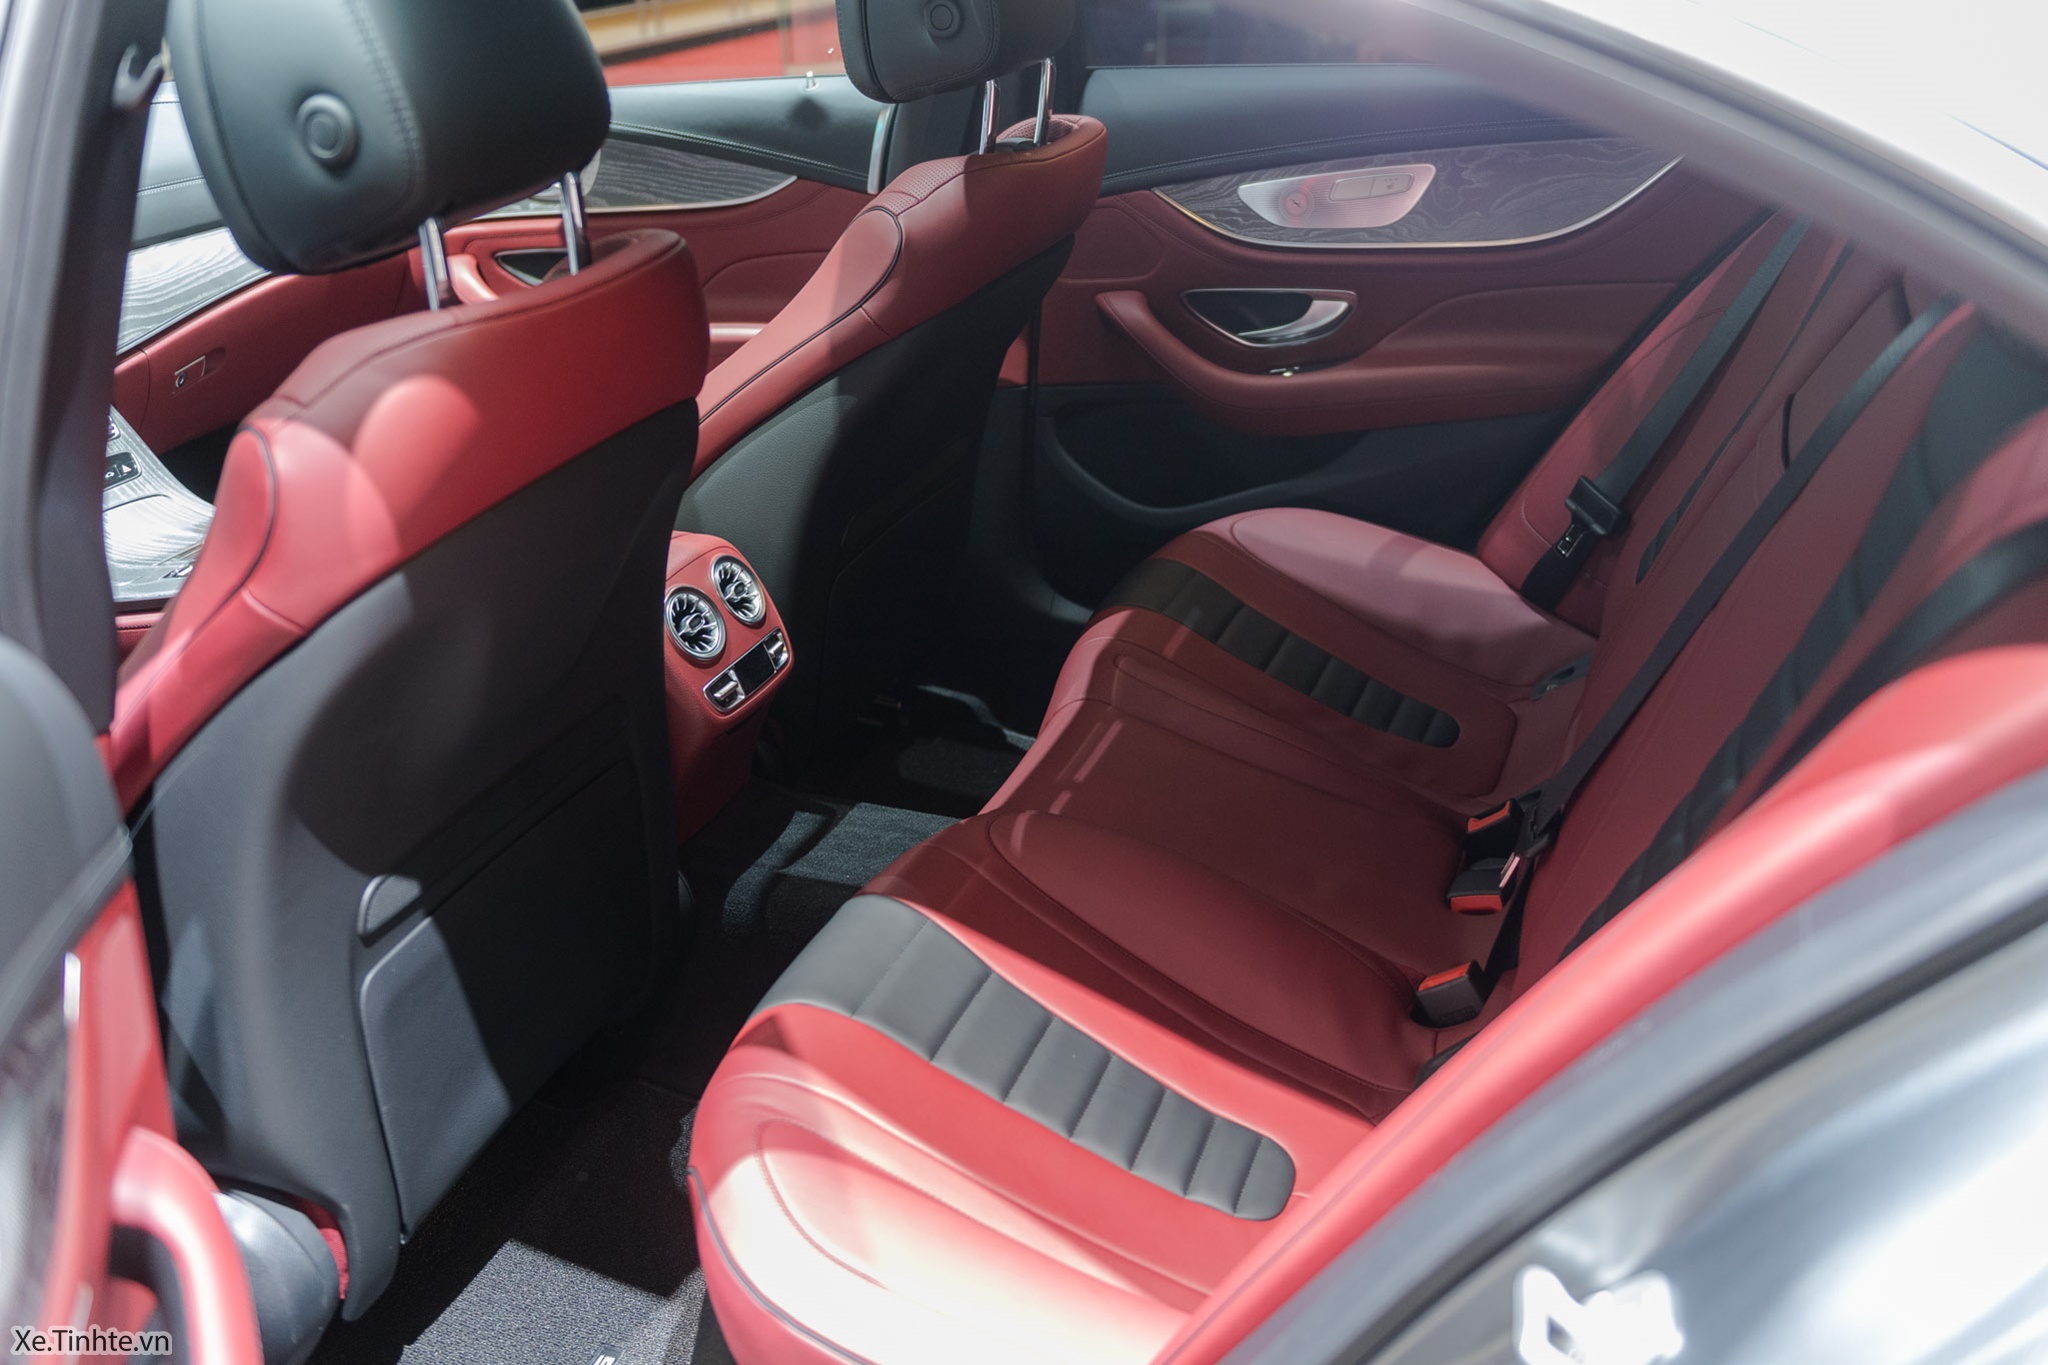 Mercedes_CLS_450_4MATIC_Coupe_Xe_Tinhte-010.jpg